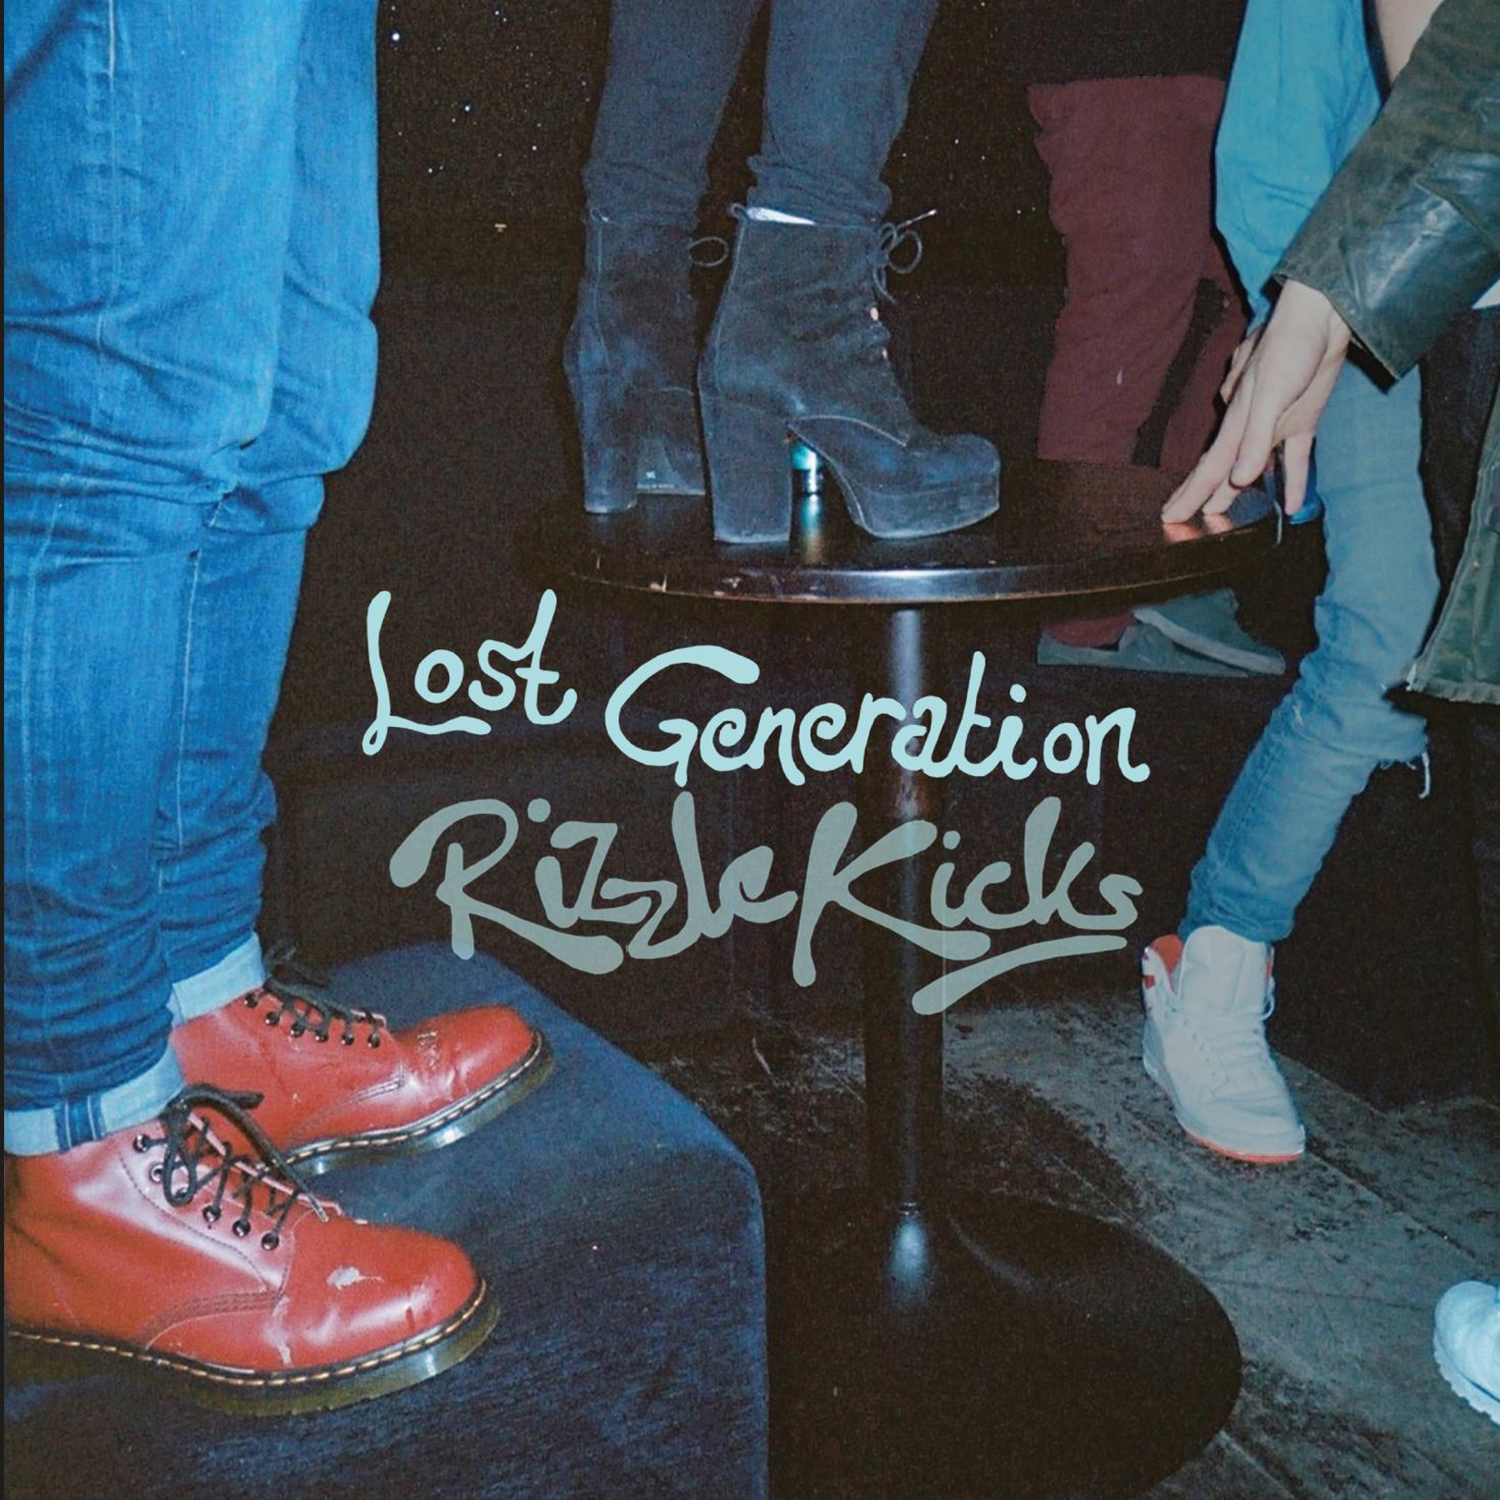 'Lost Generation' Single Artwork. 2013.